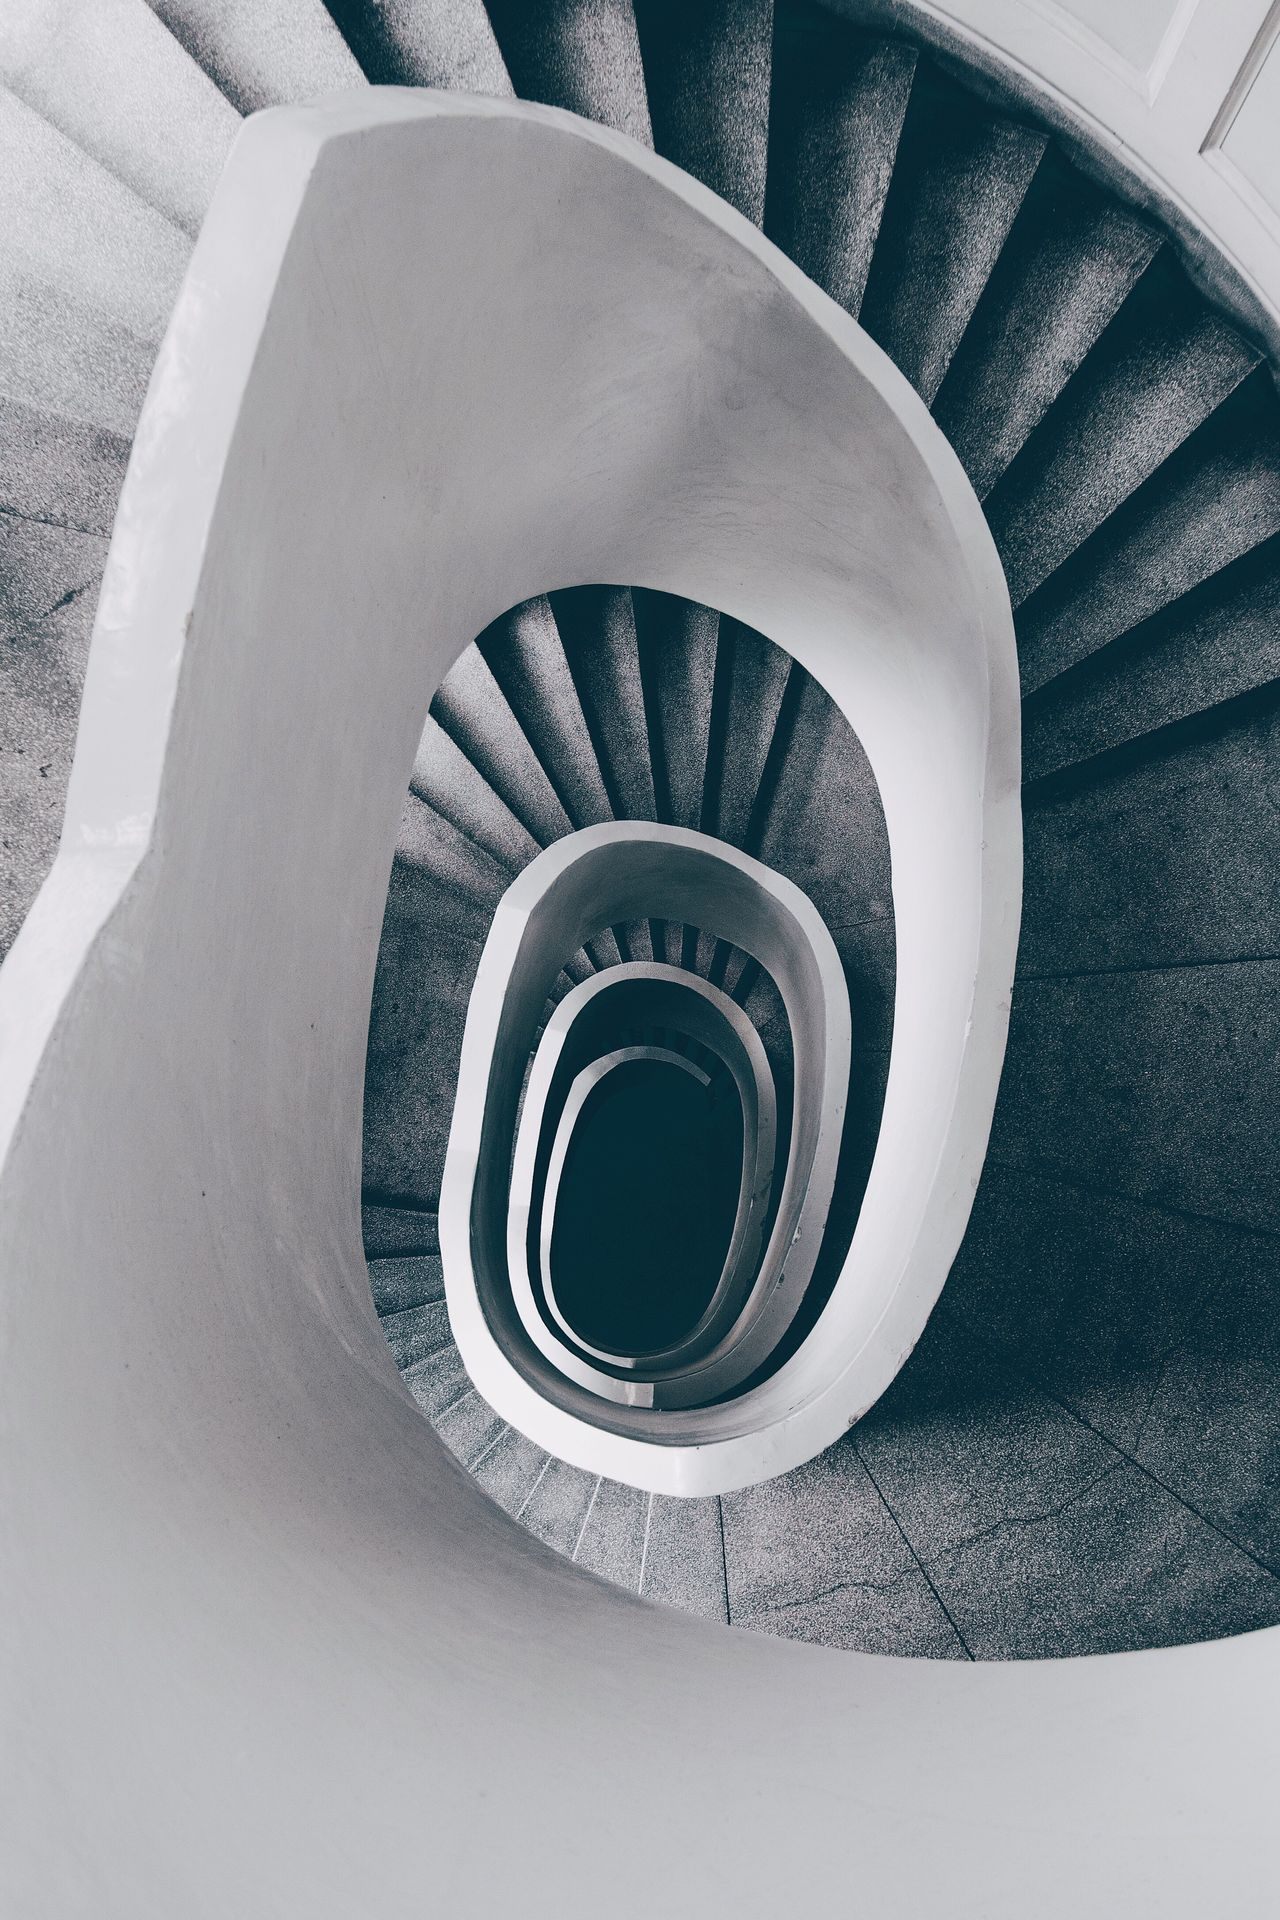 Staircase Spiral Railing Steps And Staircases Steps Built Structure Architecture Spiral Stairs High Angle View Stairs Spiral Staircase Hand Rail No People Day